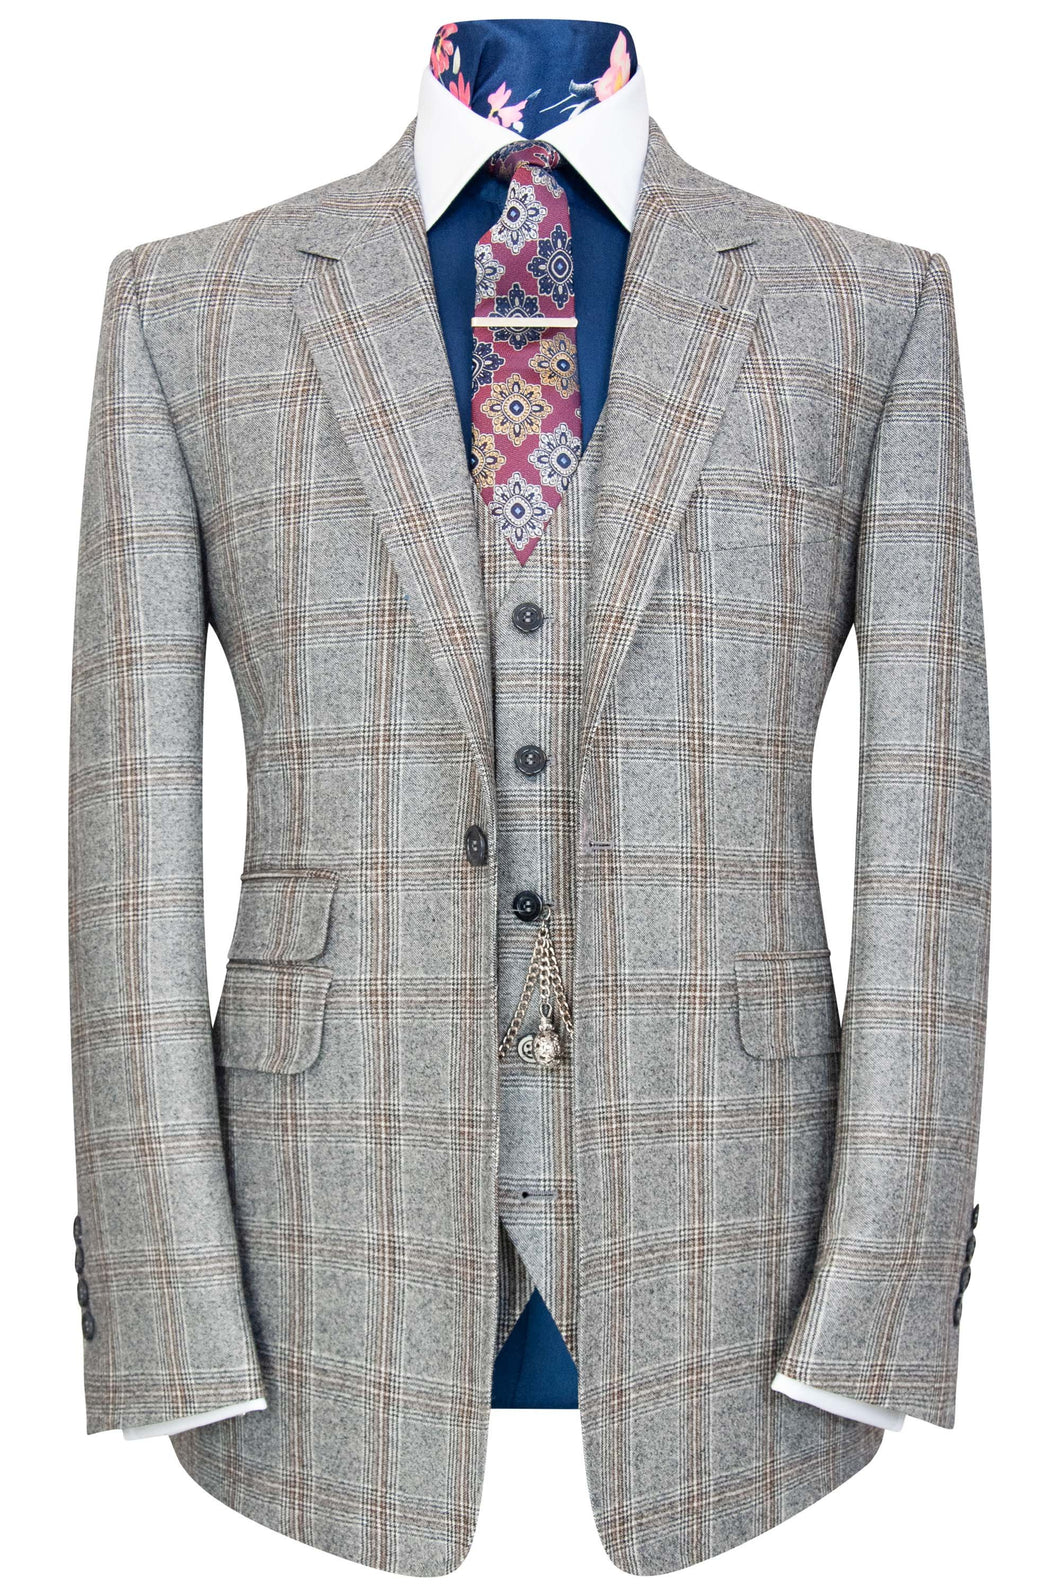 William Hunt Savile Row Grey marl three piece suit with black and barley overcheck